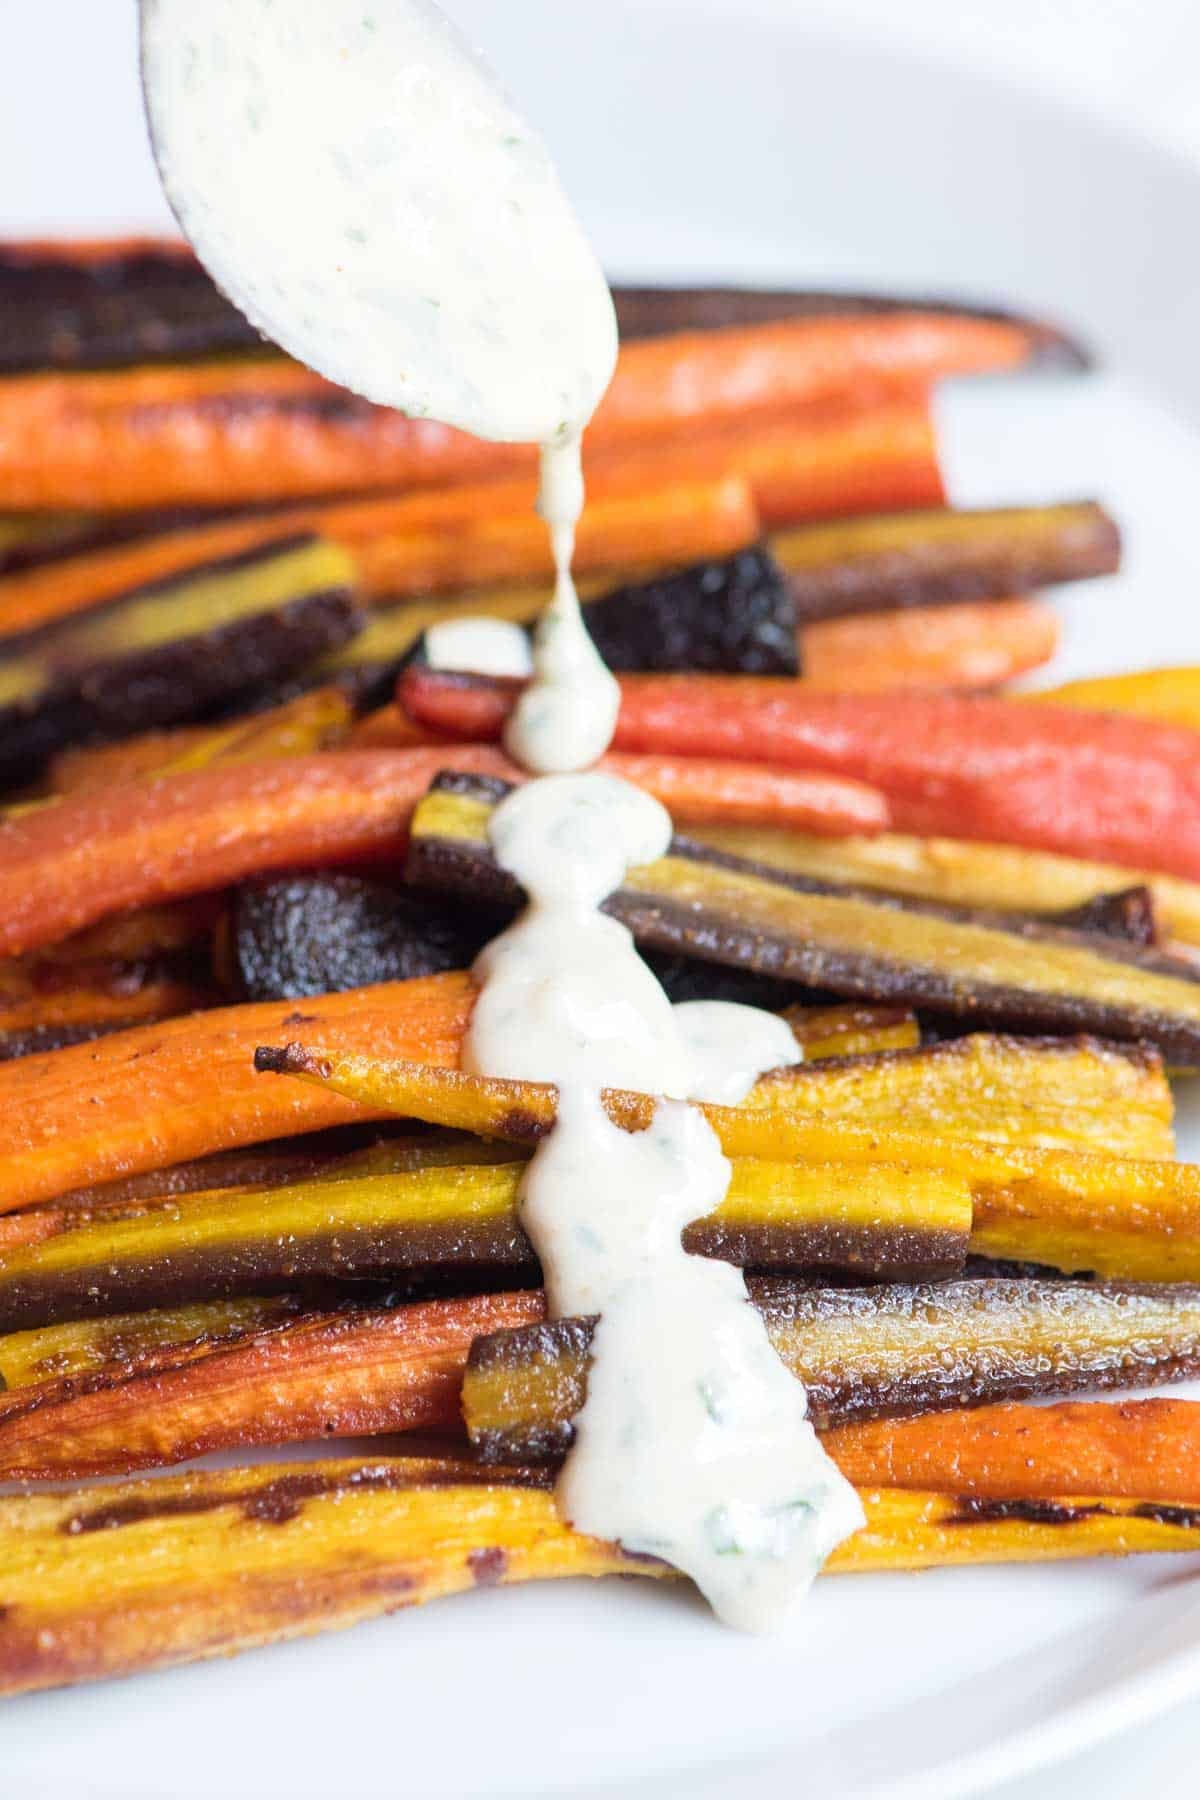 Honey Roasted Carrots with tahini sauce being drizzled on top